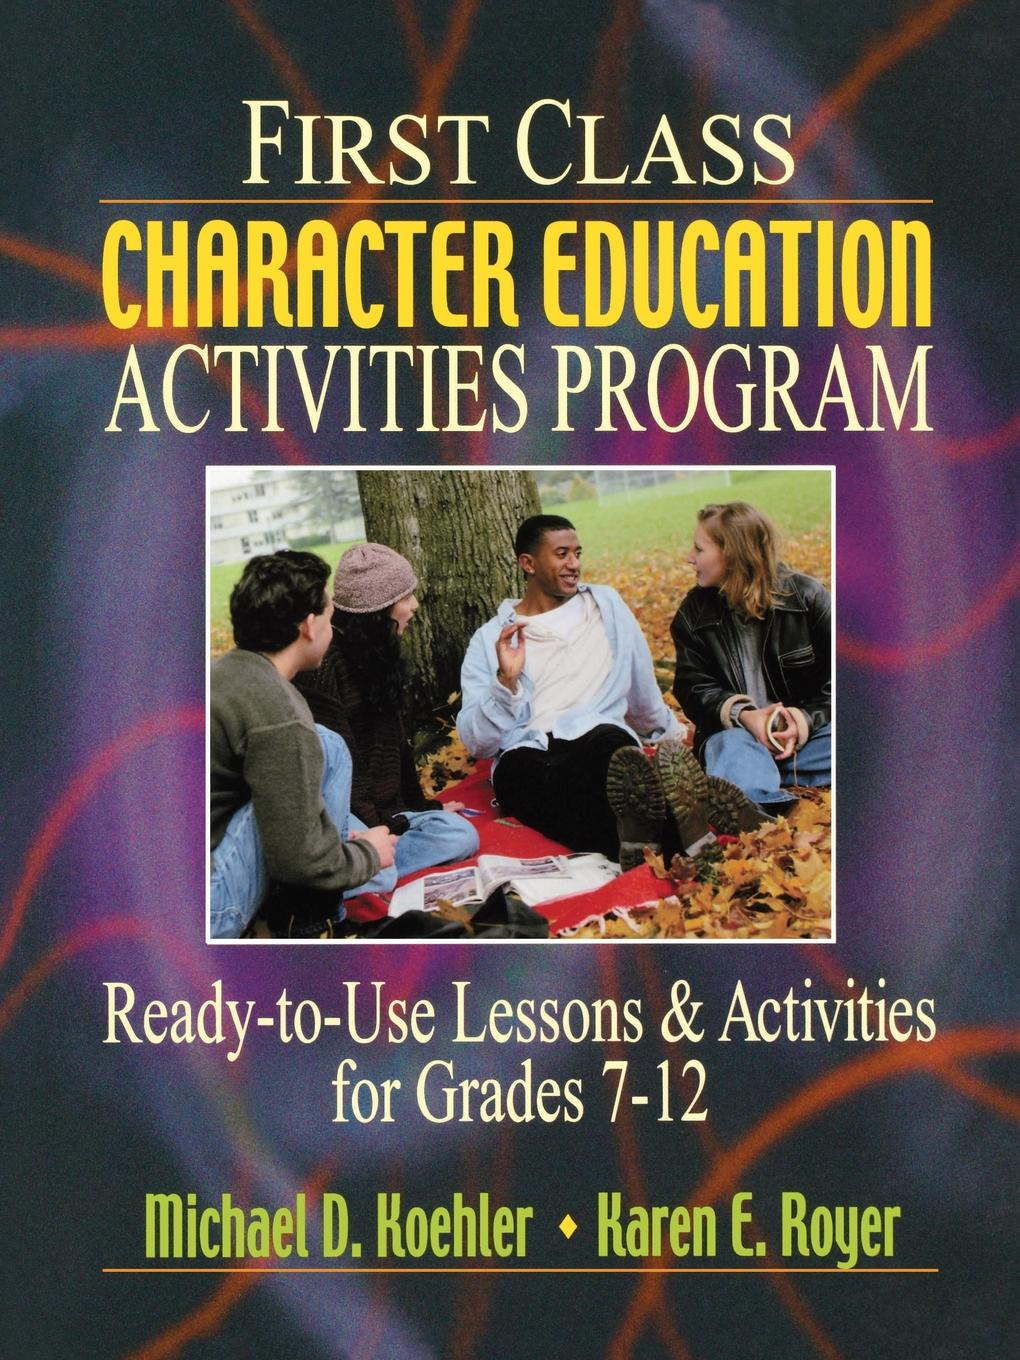 Michael D. Koehler, Mike Koehler, Karen E. Royer First Class Character Education Activities Program. Ready-To-Use Lessons and Activities for Grades 7 - 12 michael alexander 101 ready to use excel formulas